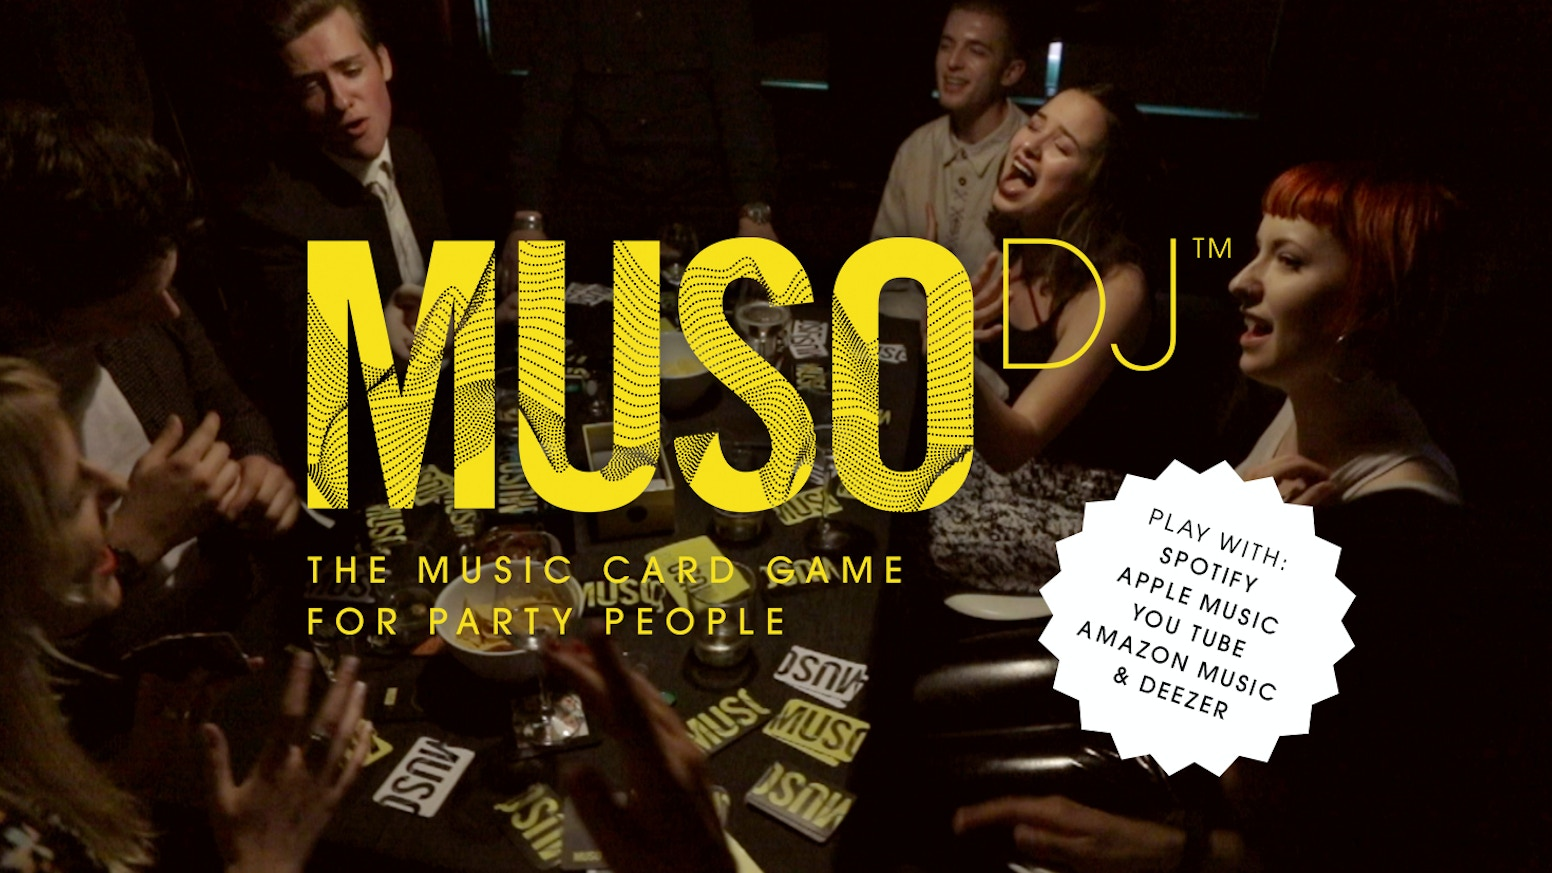 MUSO DJ is the world's first card game you play with music streaming services such as Spotify, Apple Music, YouTube, & Amazon Music.To find out more and buy your copy of MusoDJ Adult Edition, with PayPal please go to www.musodj.com NOW !